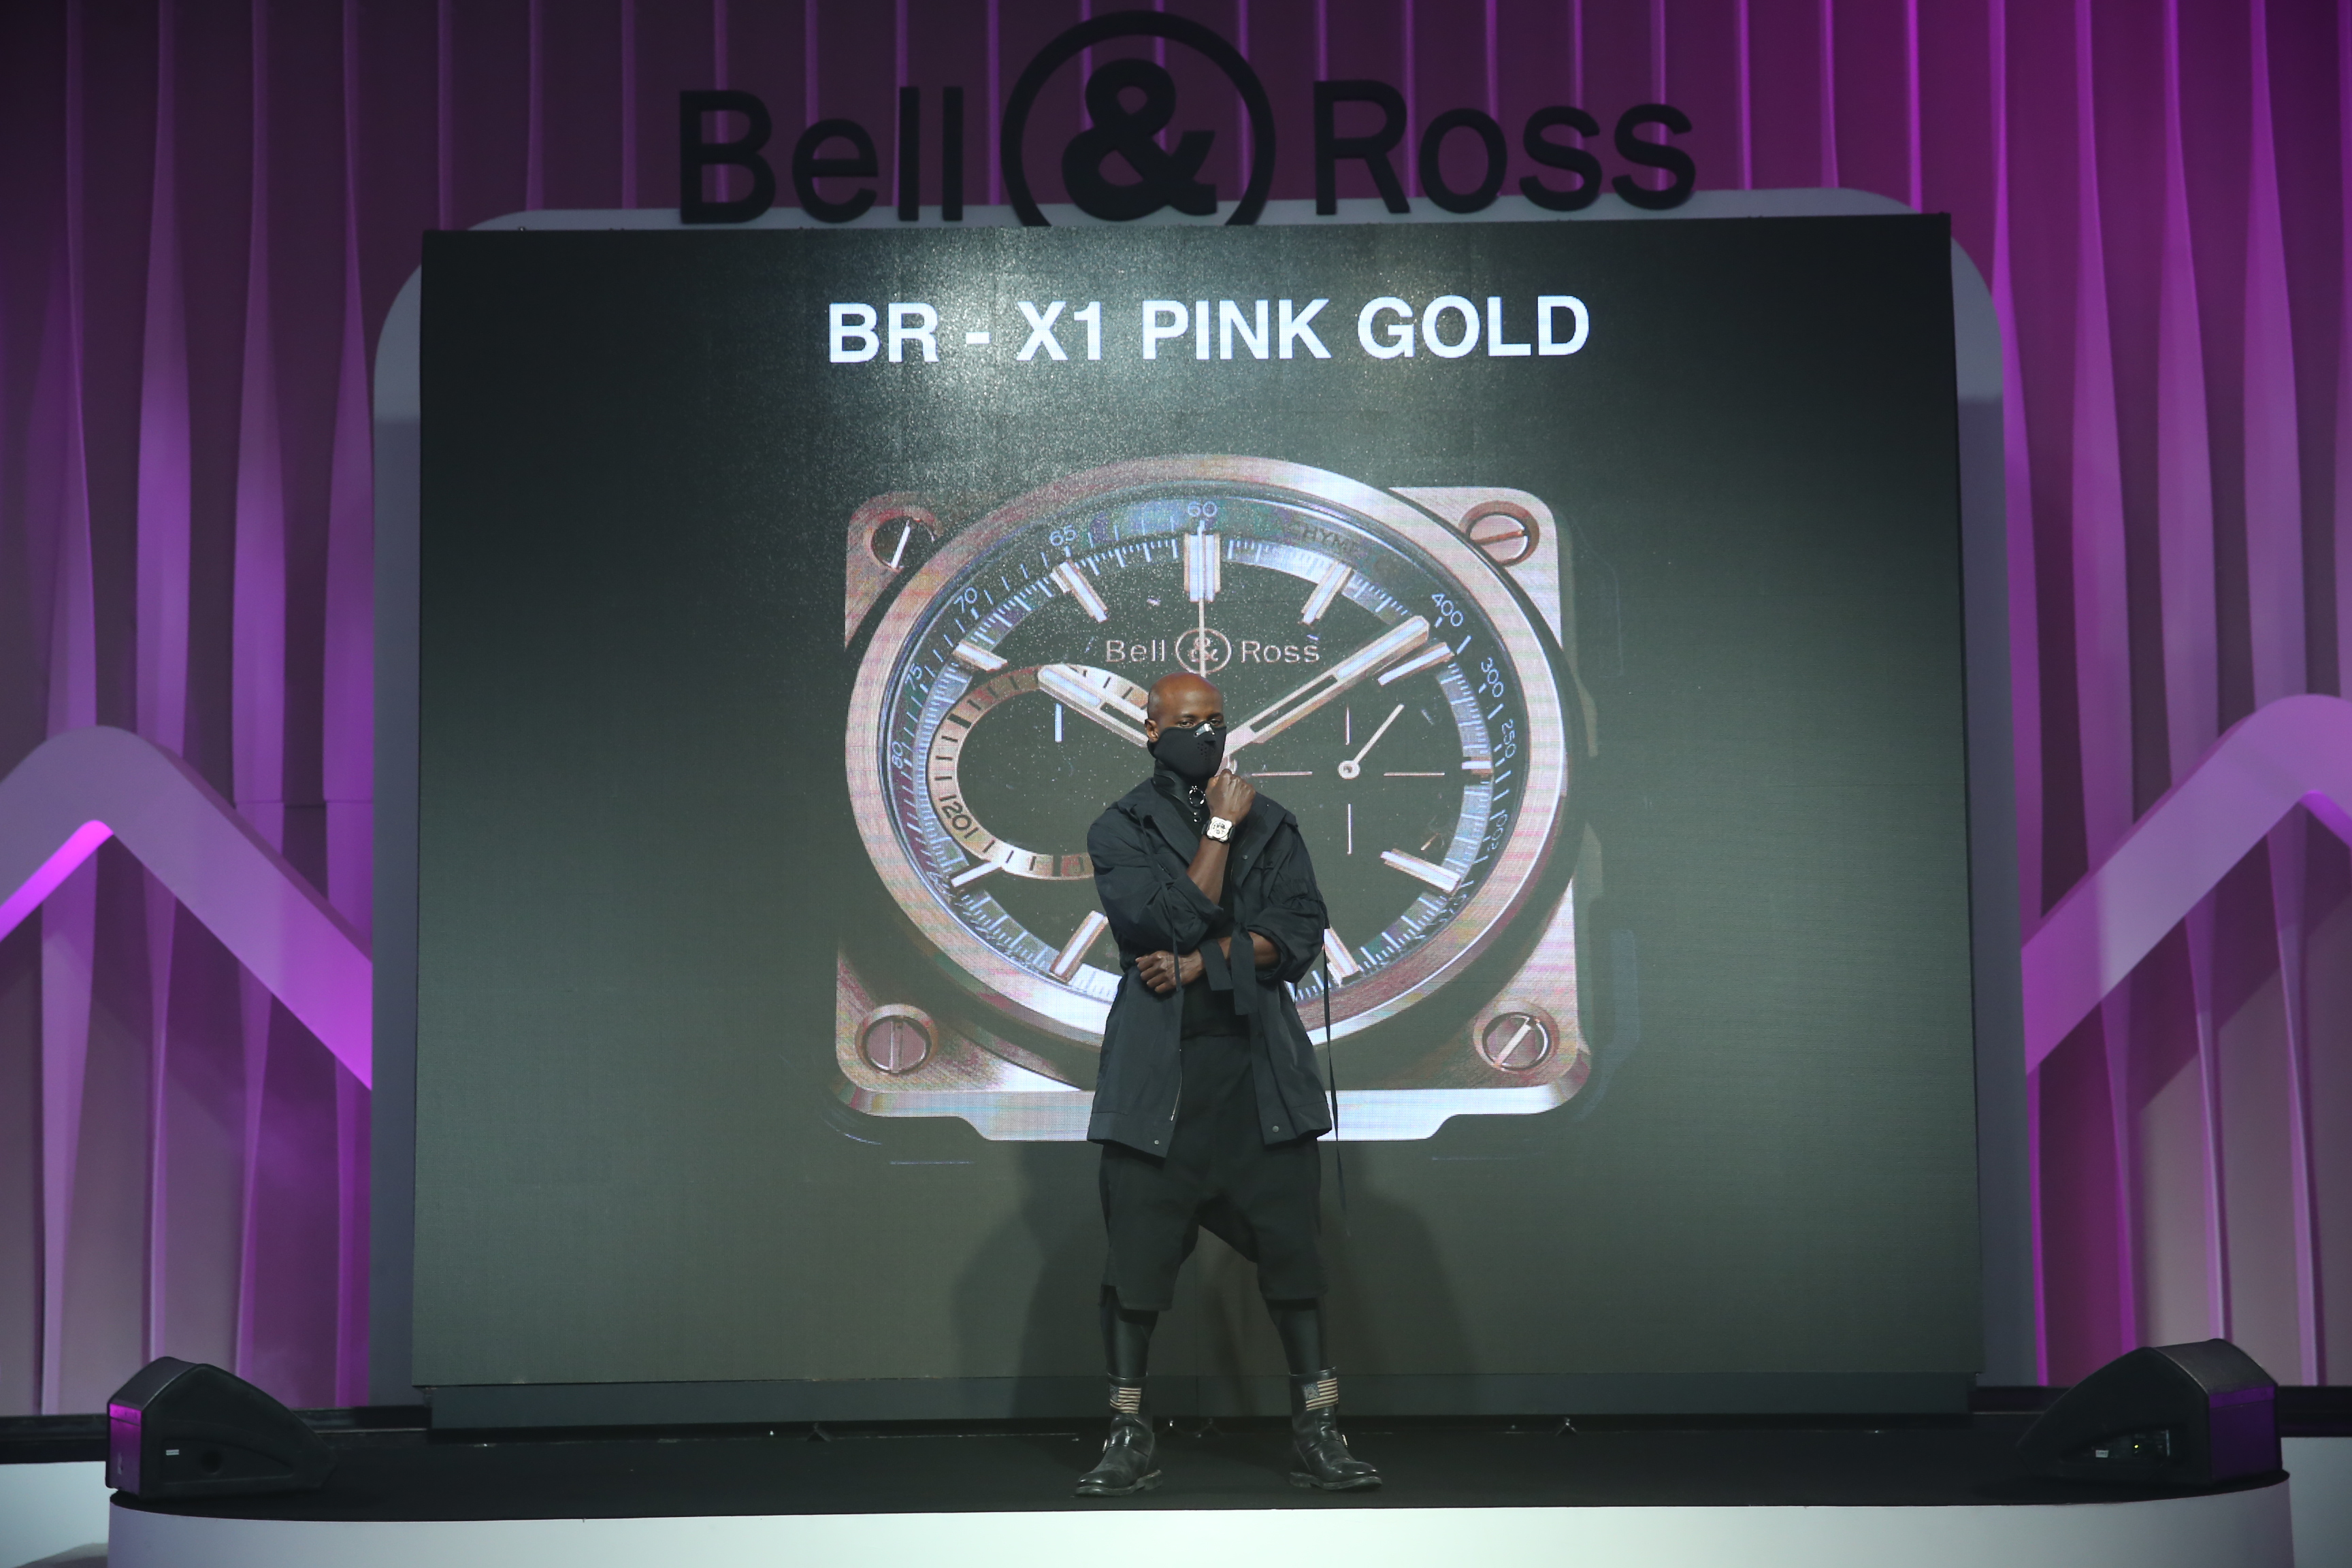 Bell & Ross launches BR-X1 RS17 in Thailand with Cortina Watch - Alvinology